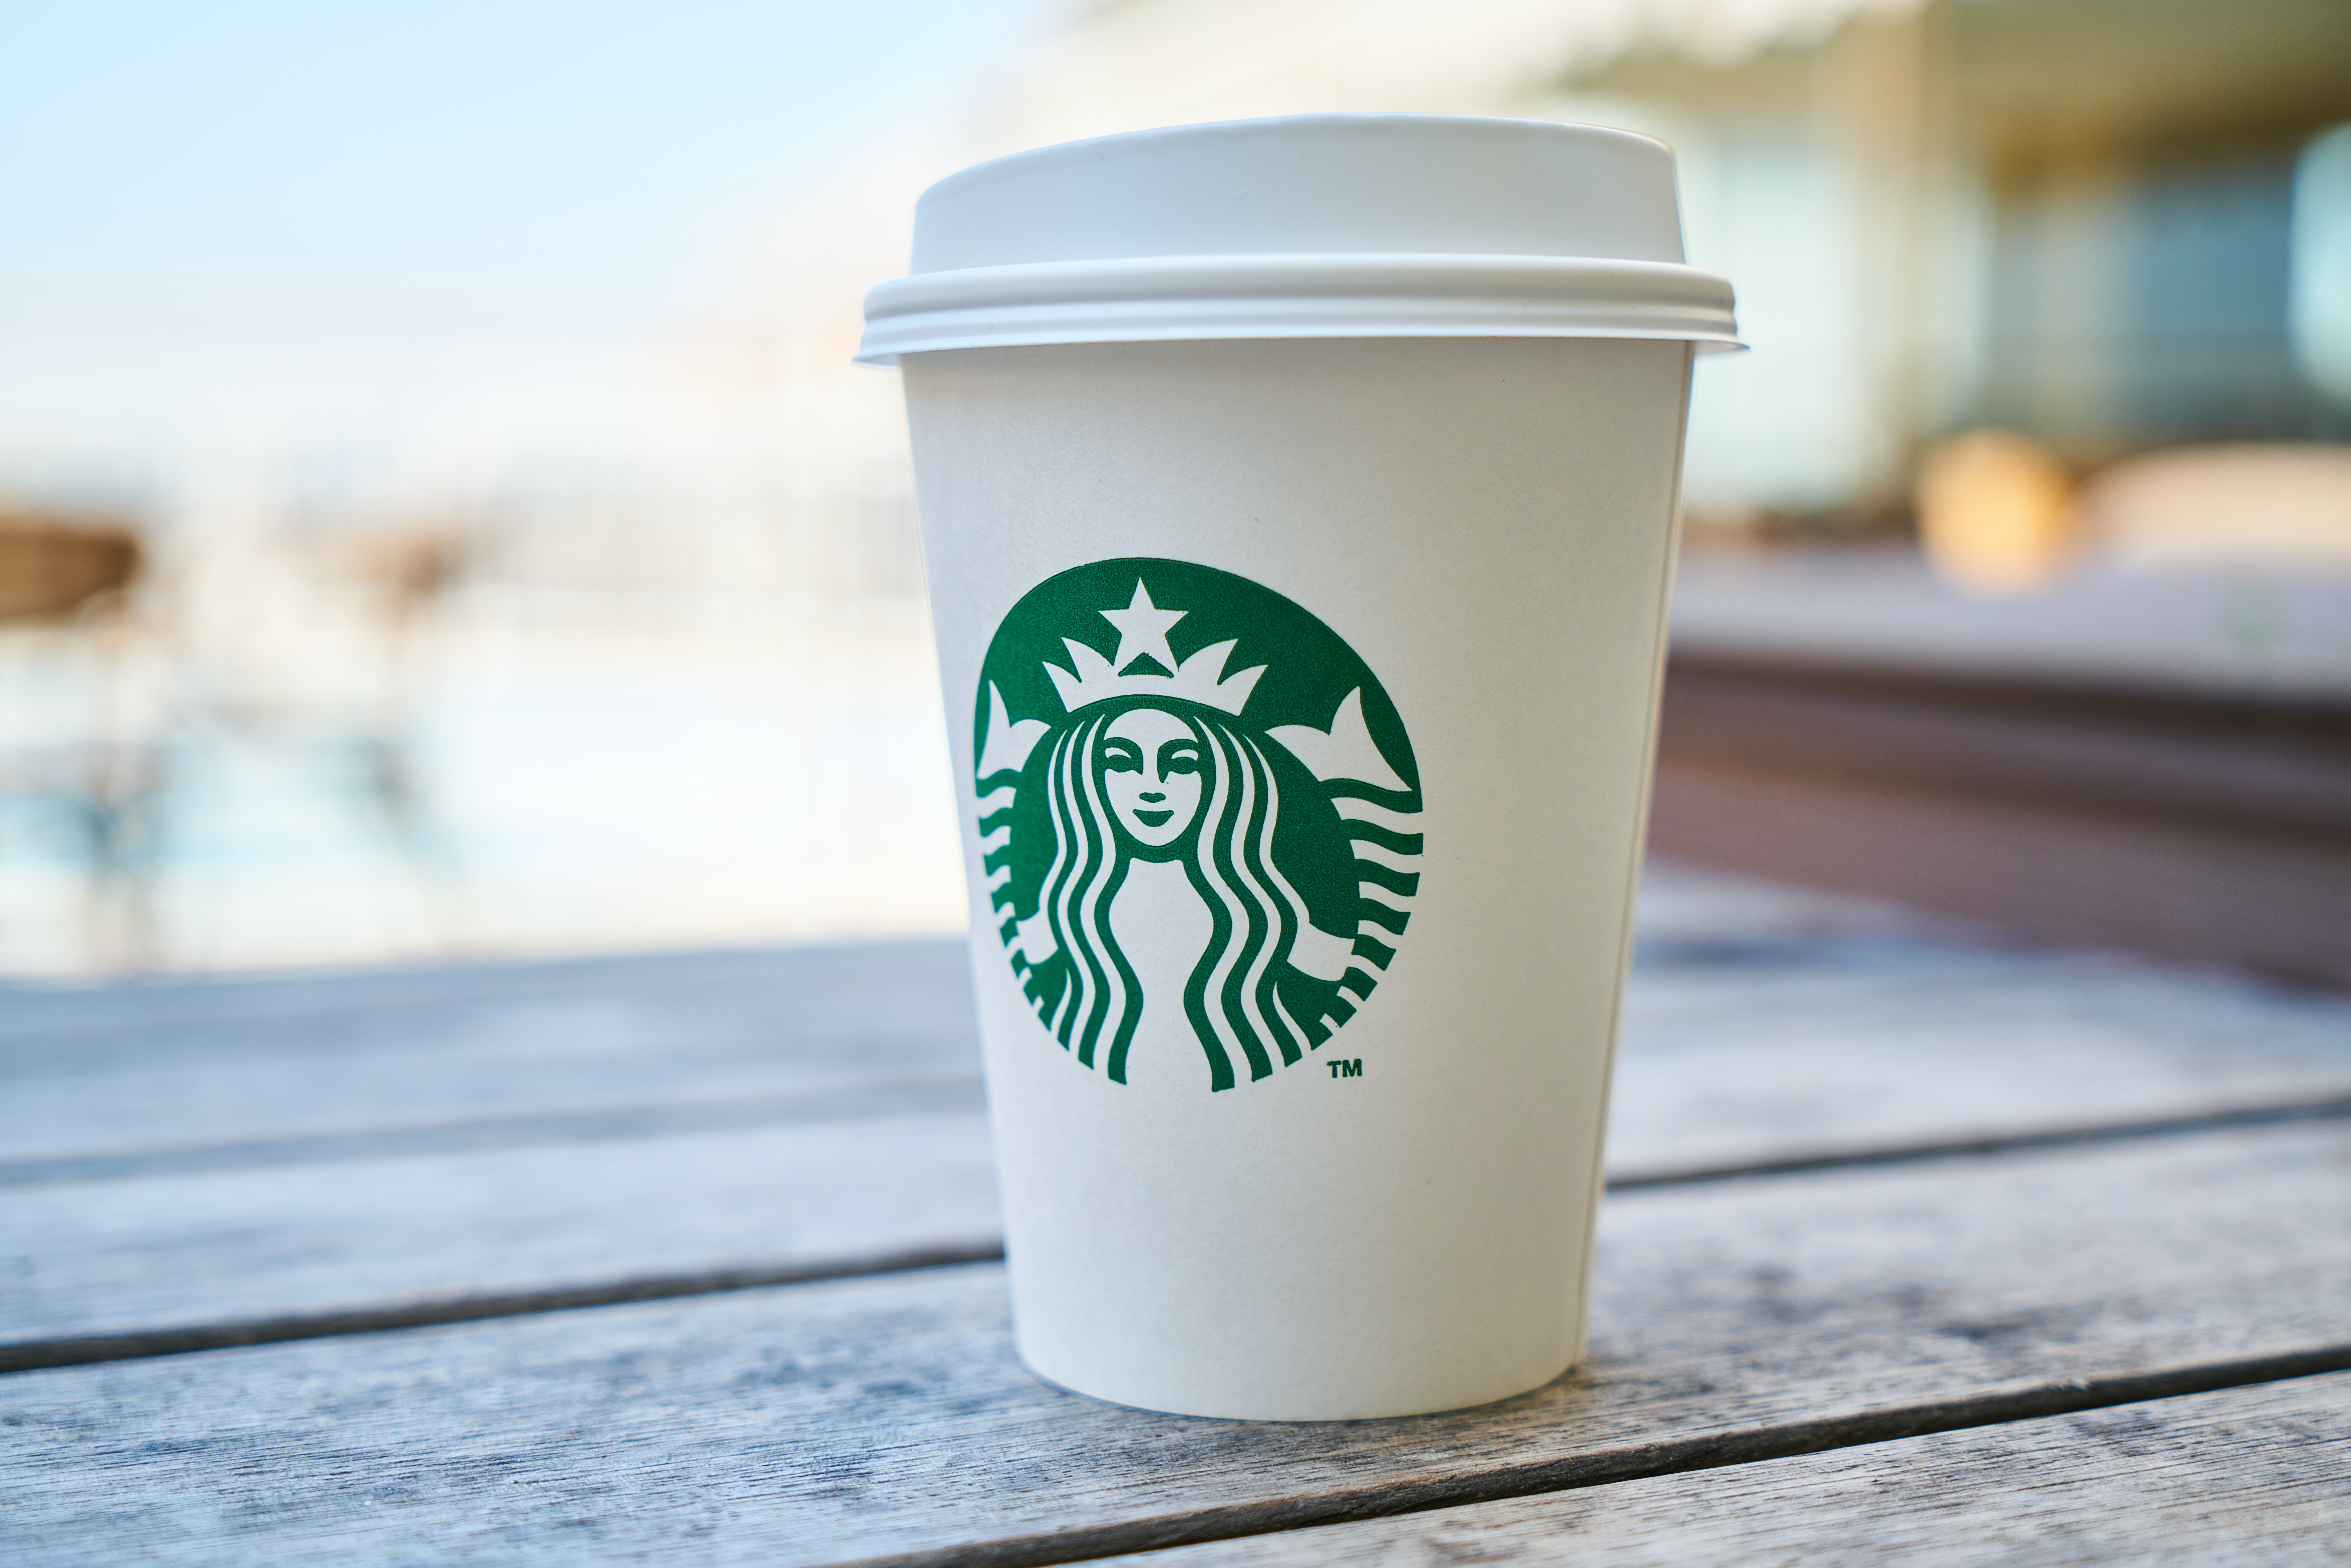 closed-white-and-green-starbucks-disposable-cup-efundamentals-blog